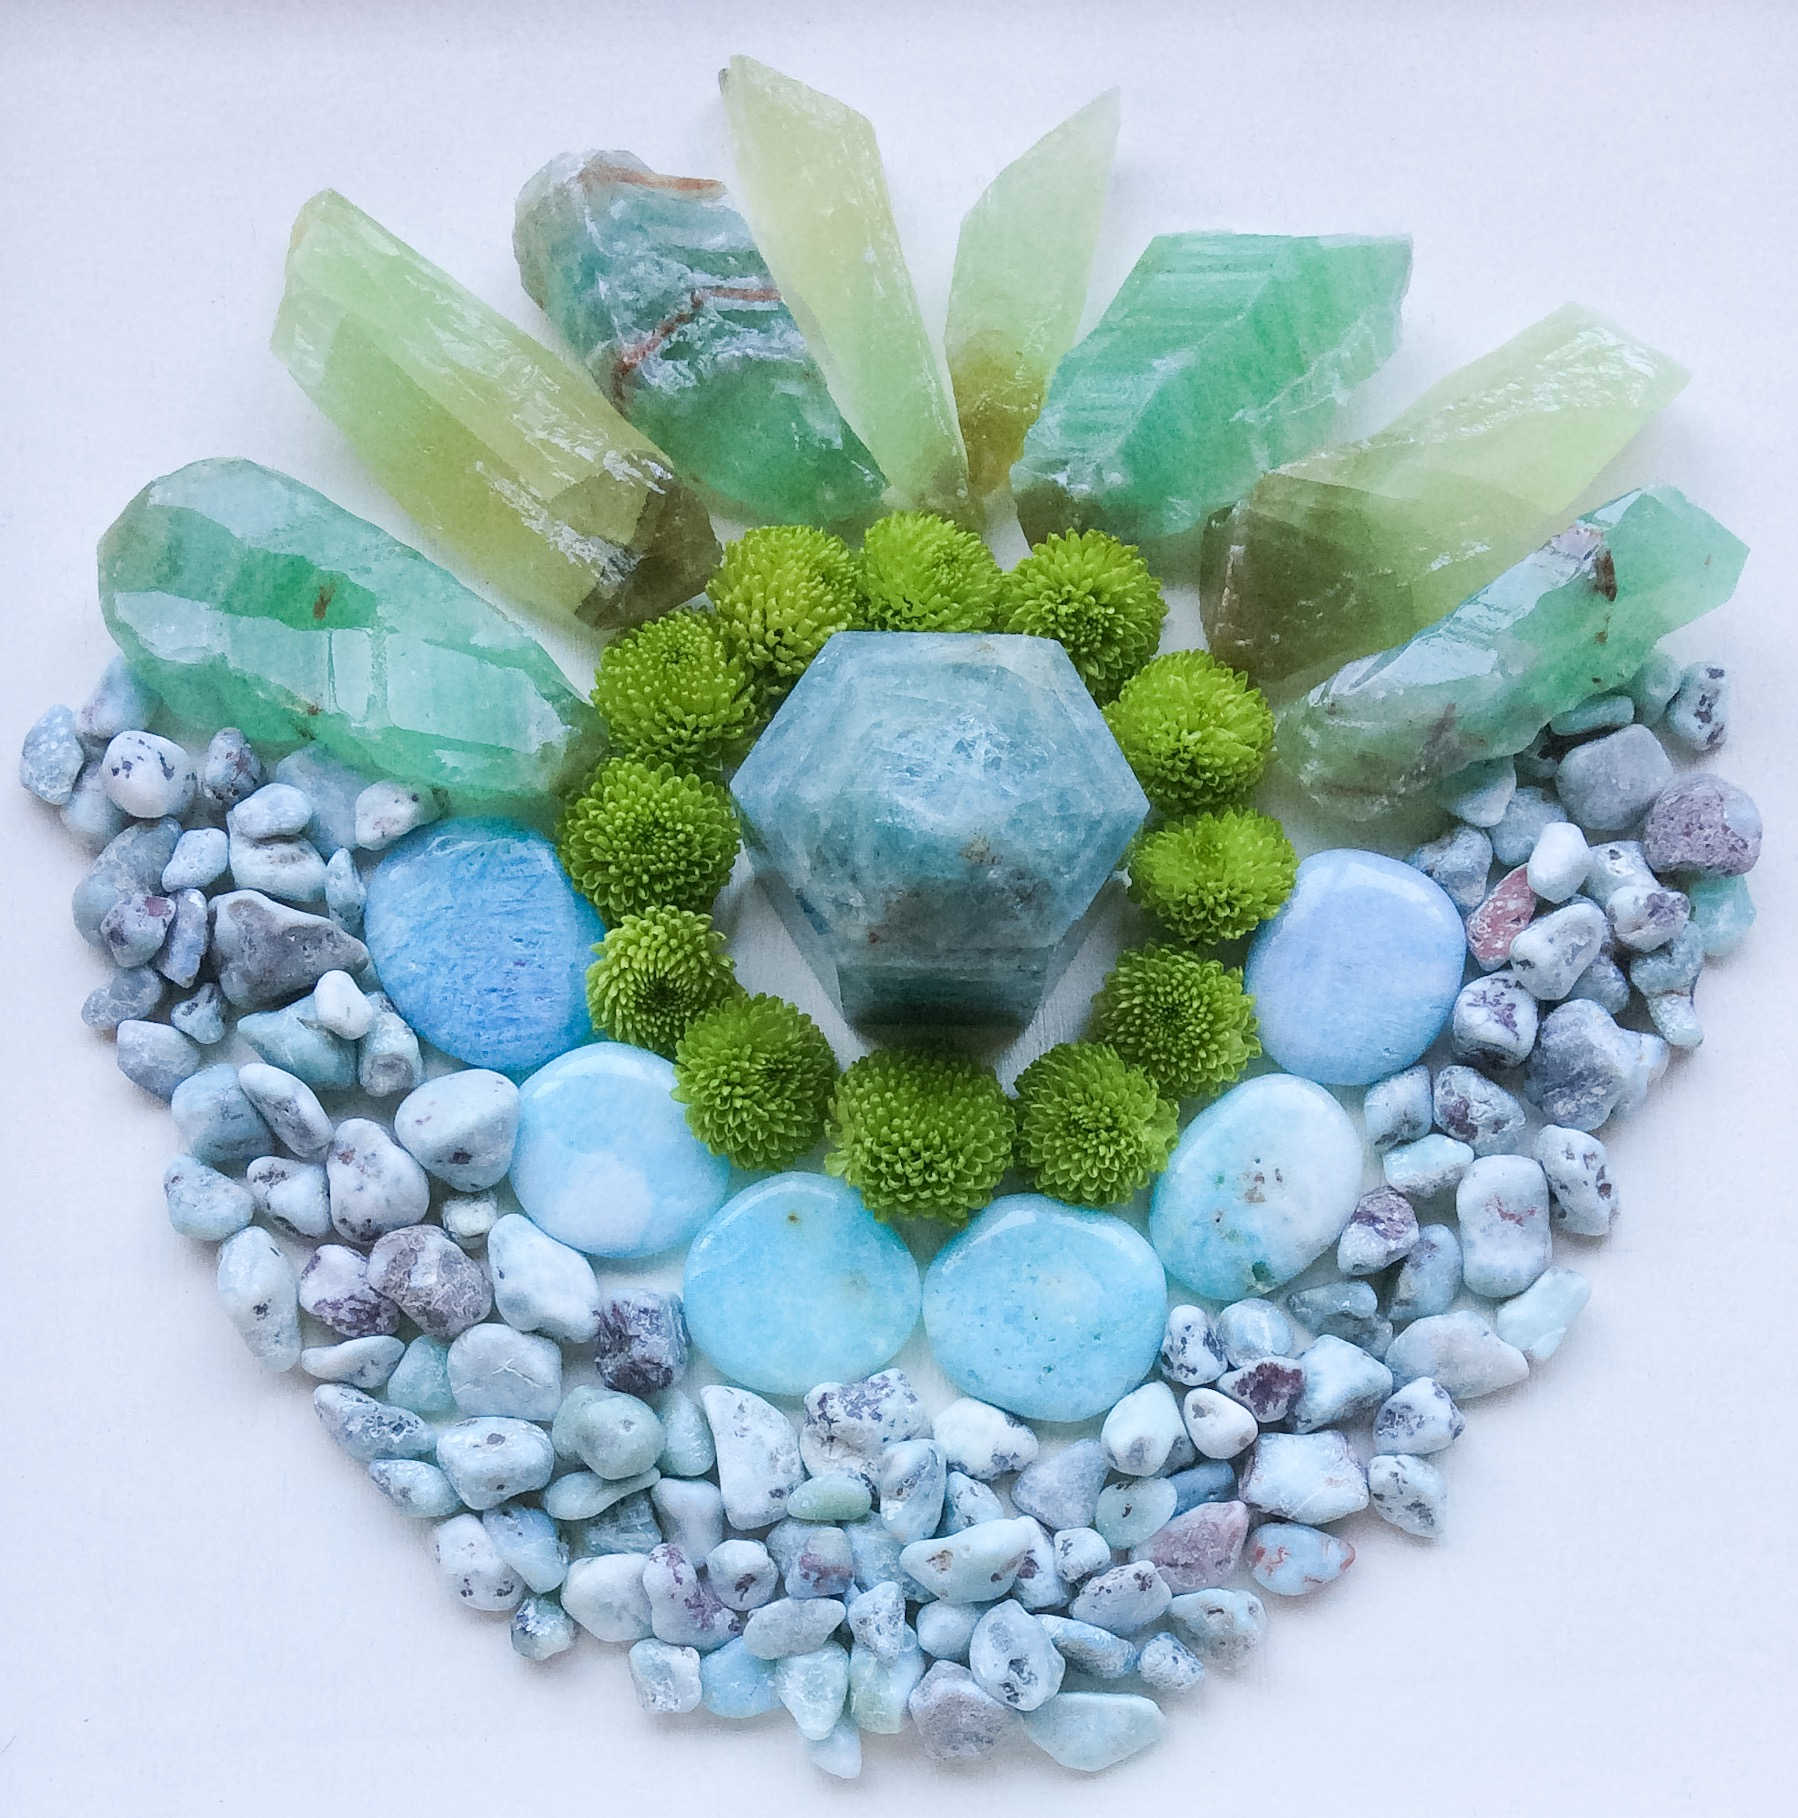 Aquamarine, Blue Aragonite, Larimar, Green Calcite and Chrysanthemum